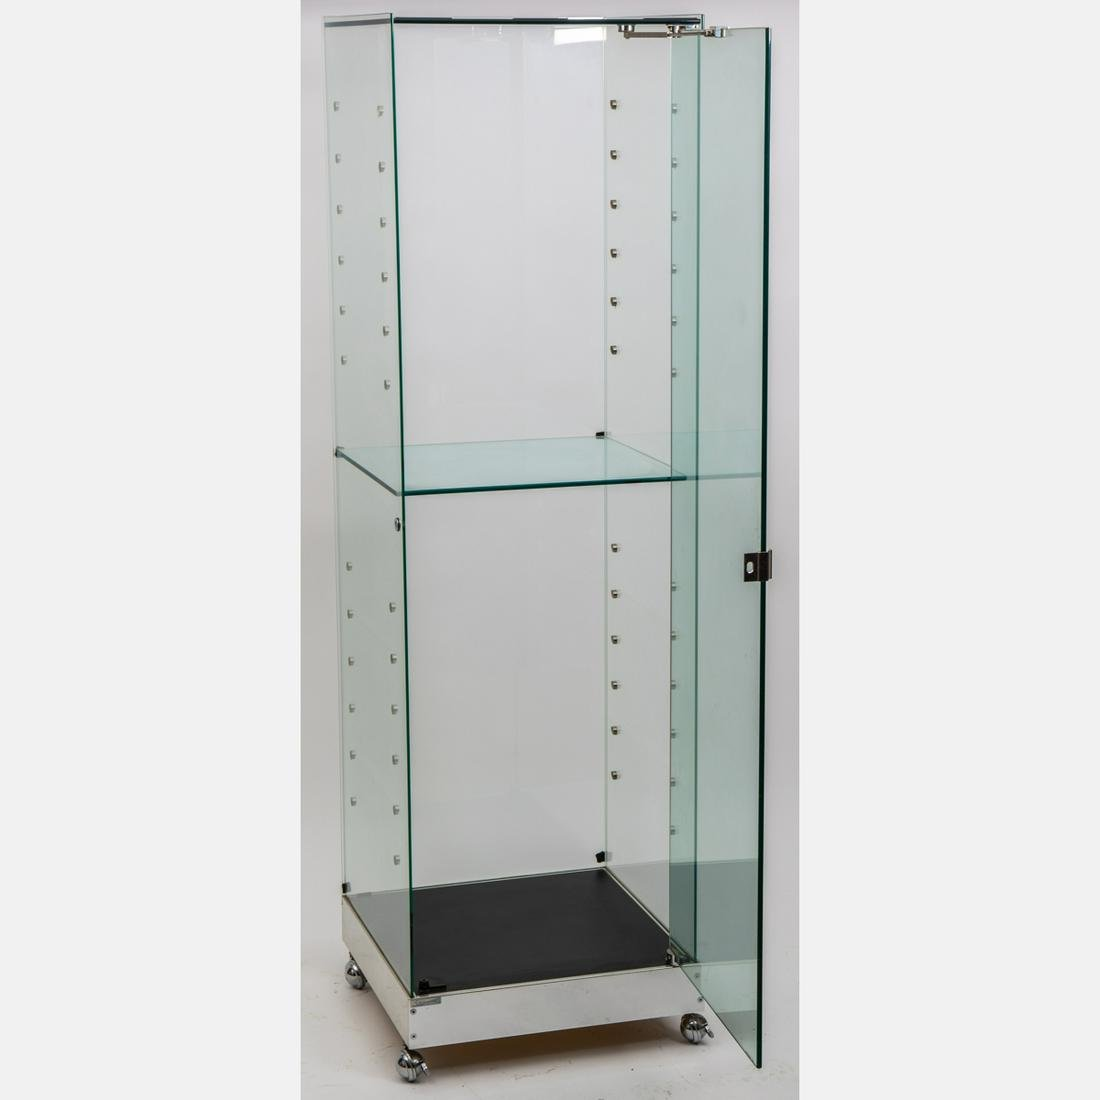 A Contemporary Glass and Chrome Display Cabinet,